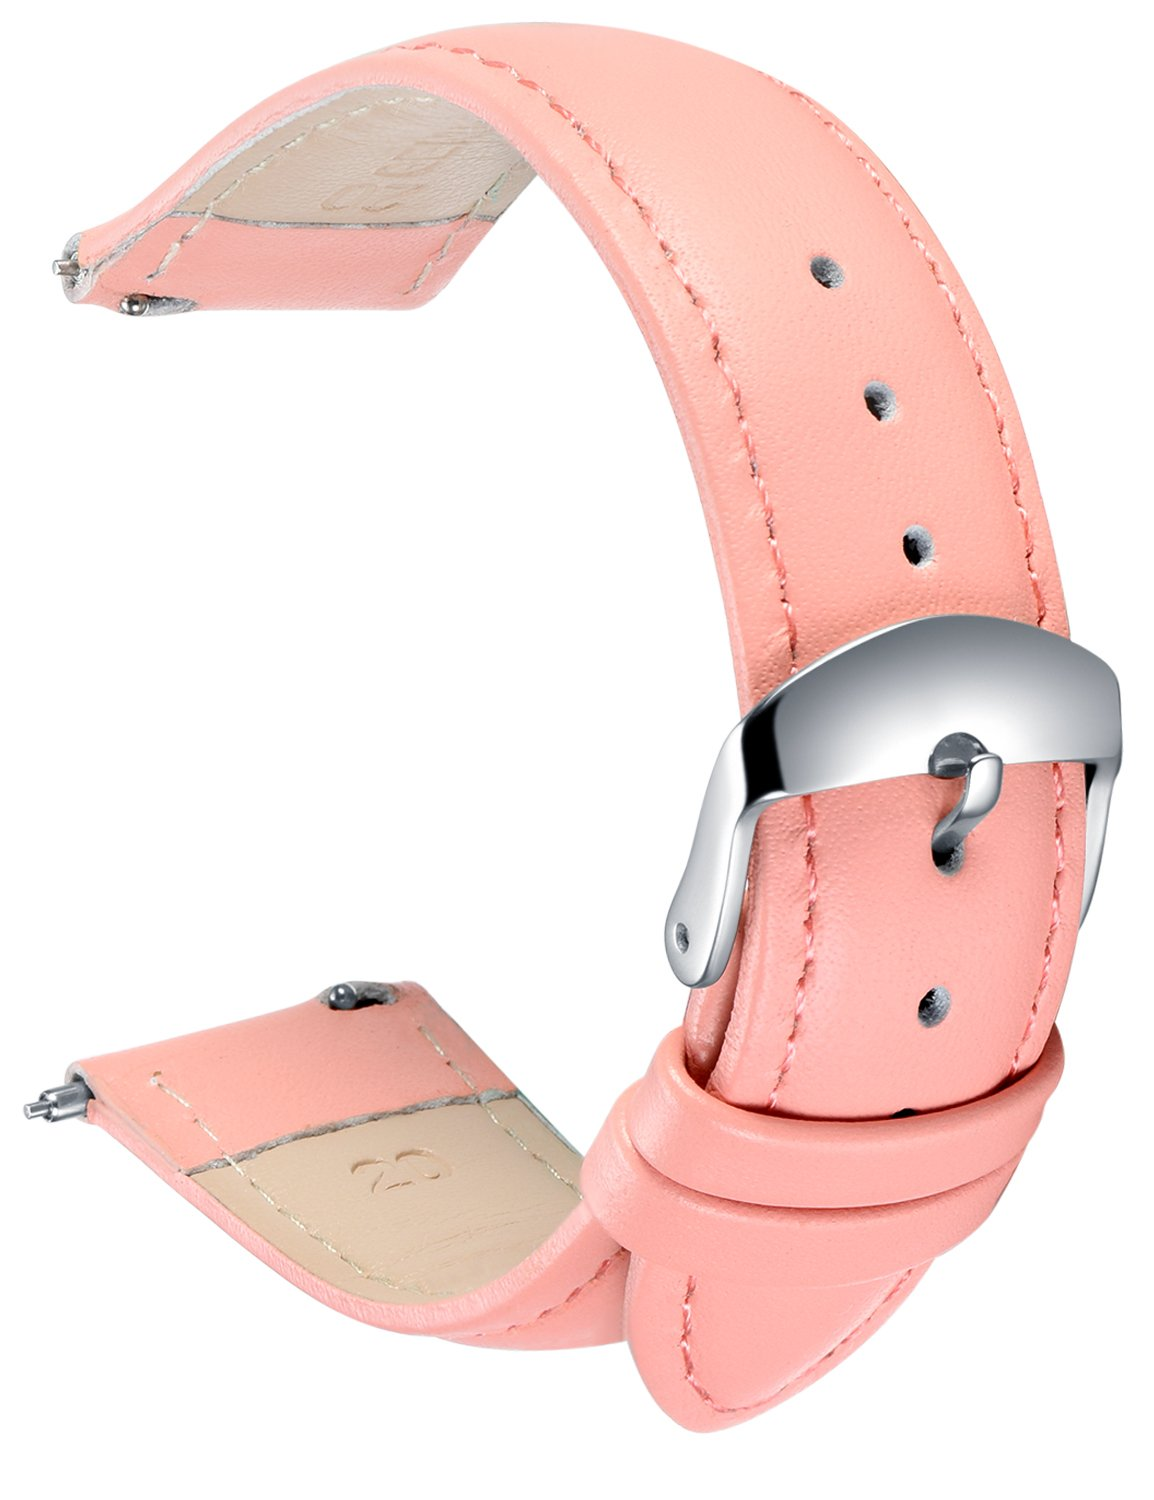 Quick Release Leather Watch Band, SONGDU Full Grain Genuine Leather Replacement Watch Strap with Stainless Metal Buckle Clasp 16mm, 18mm, 20mm, 22mm, 24mm (Pink, 18mm)